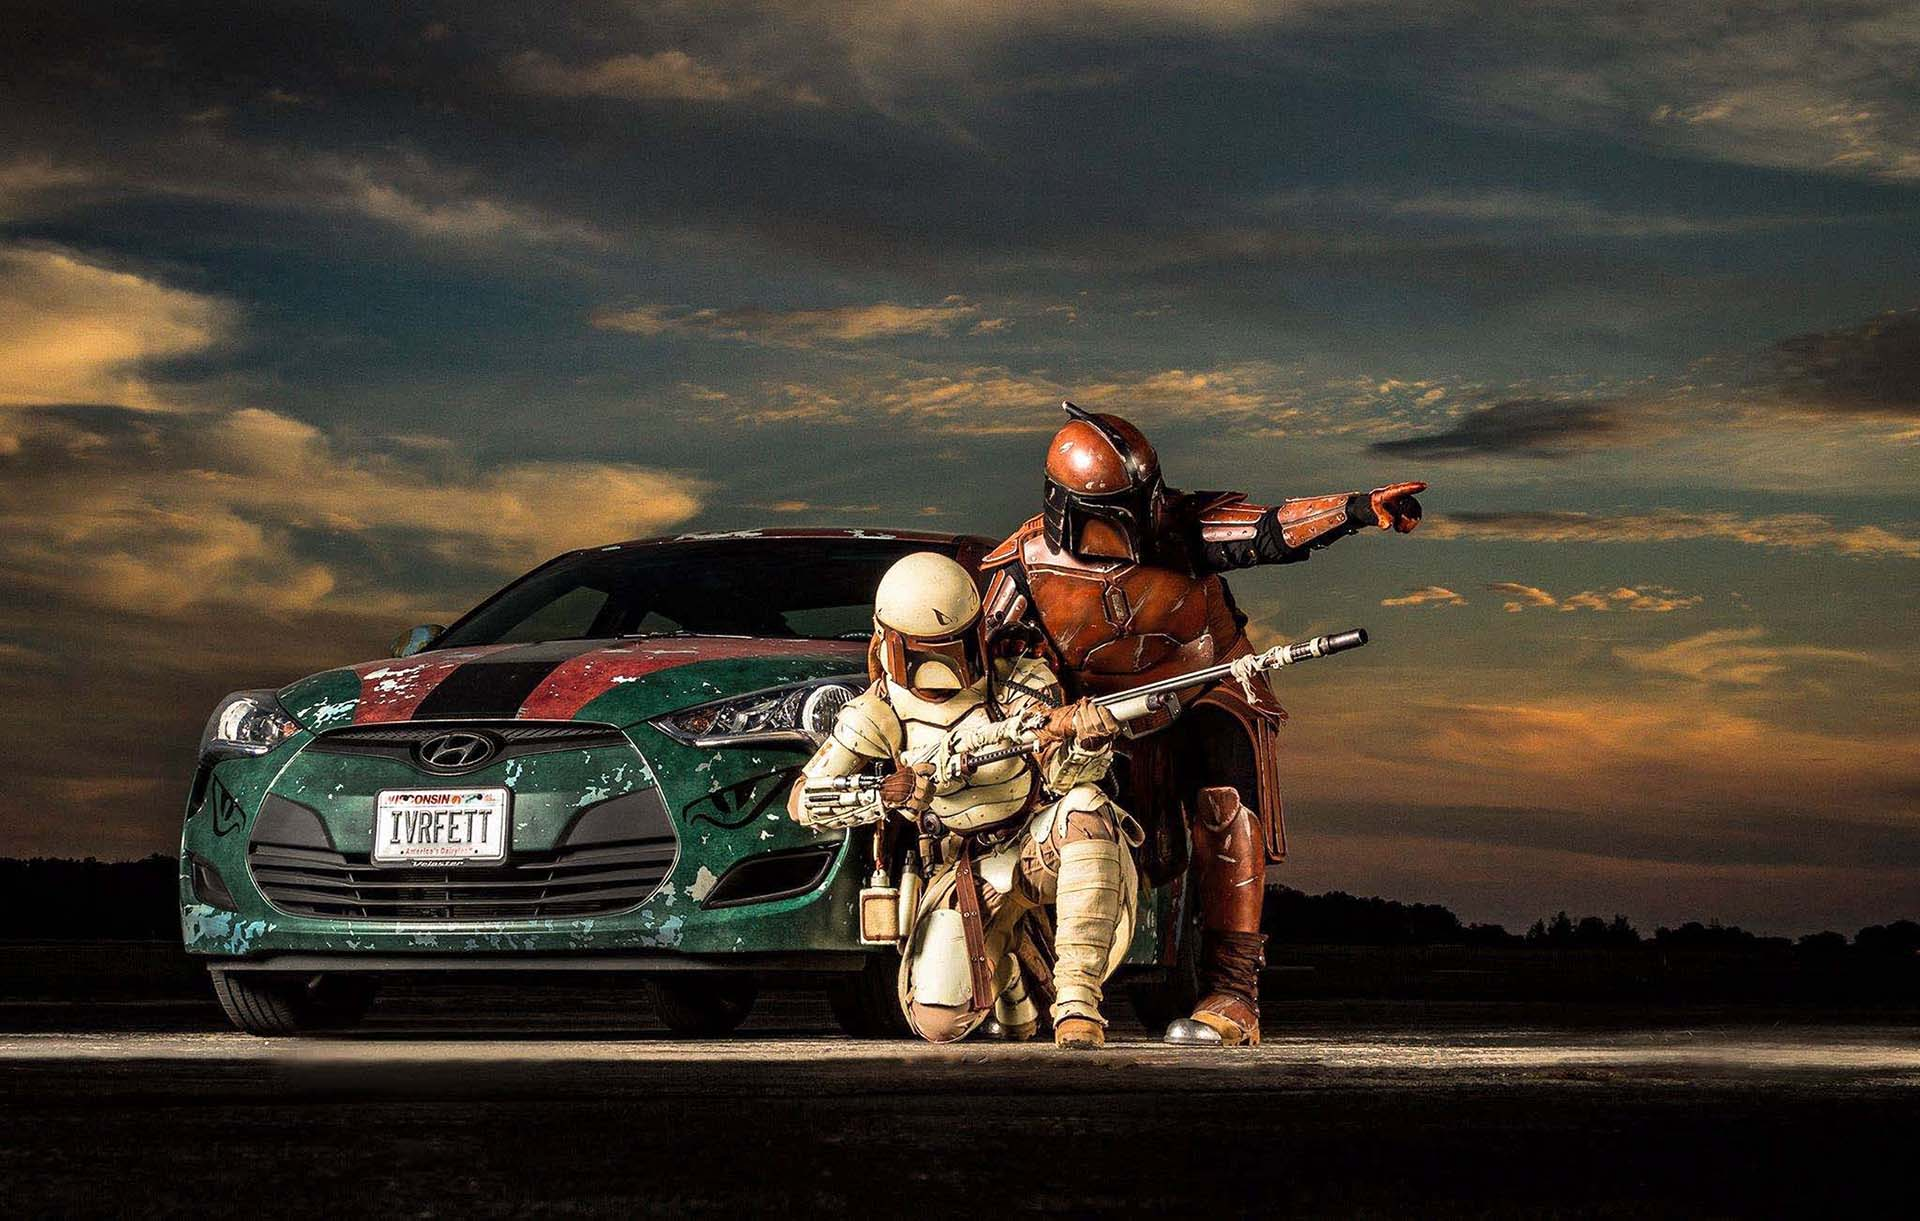 Vinyl wraps have opened new doors for art cars, and one of the best-executed examples in the Star Wars universe - aside from the VW Bus we've already discussed - is Rebekah Stieg Knuth's Hyundai Veloster. Featuring an elaborate design esthetic modeled after the famed Mandalorian armor worn by feared bounty hunter Boba Fett, 'Ivor Fett' even has its own Facebook page. Because it's 2015.